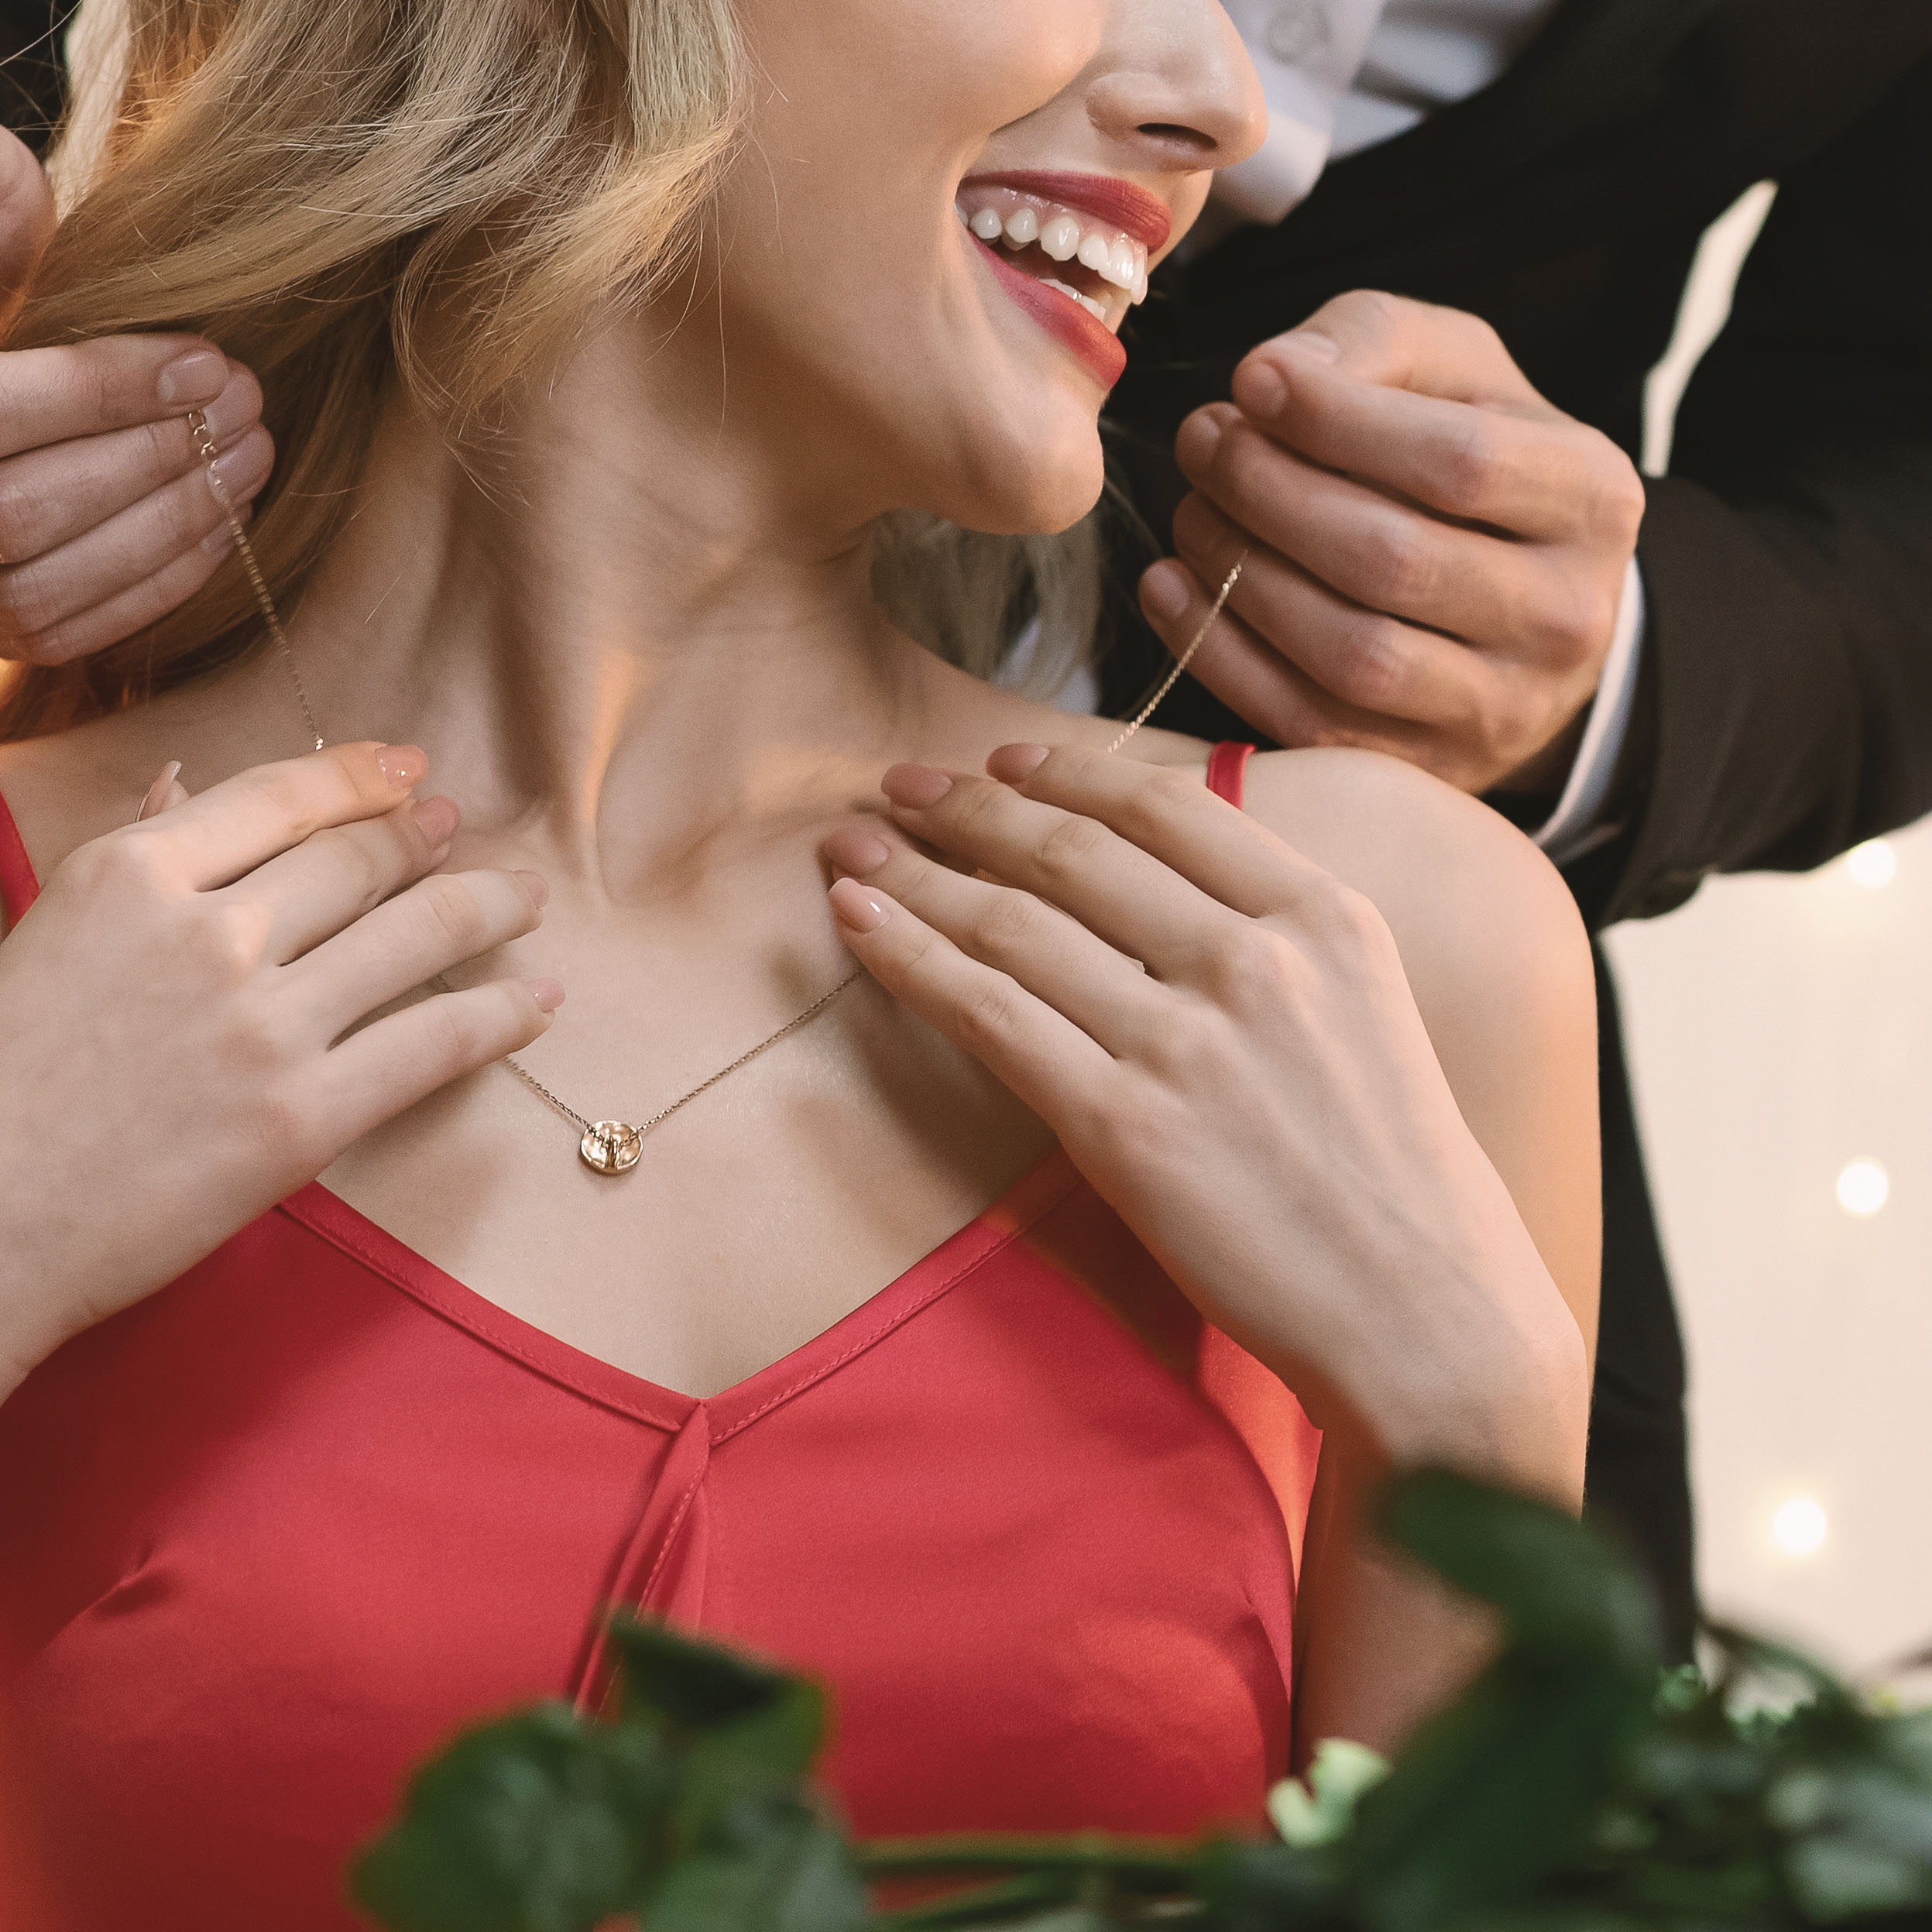 Luxury Gift. Happy Woman Receiving Golden Pendant Necklace on anniversary day